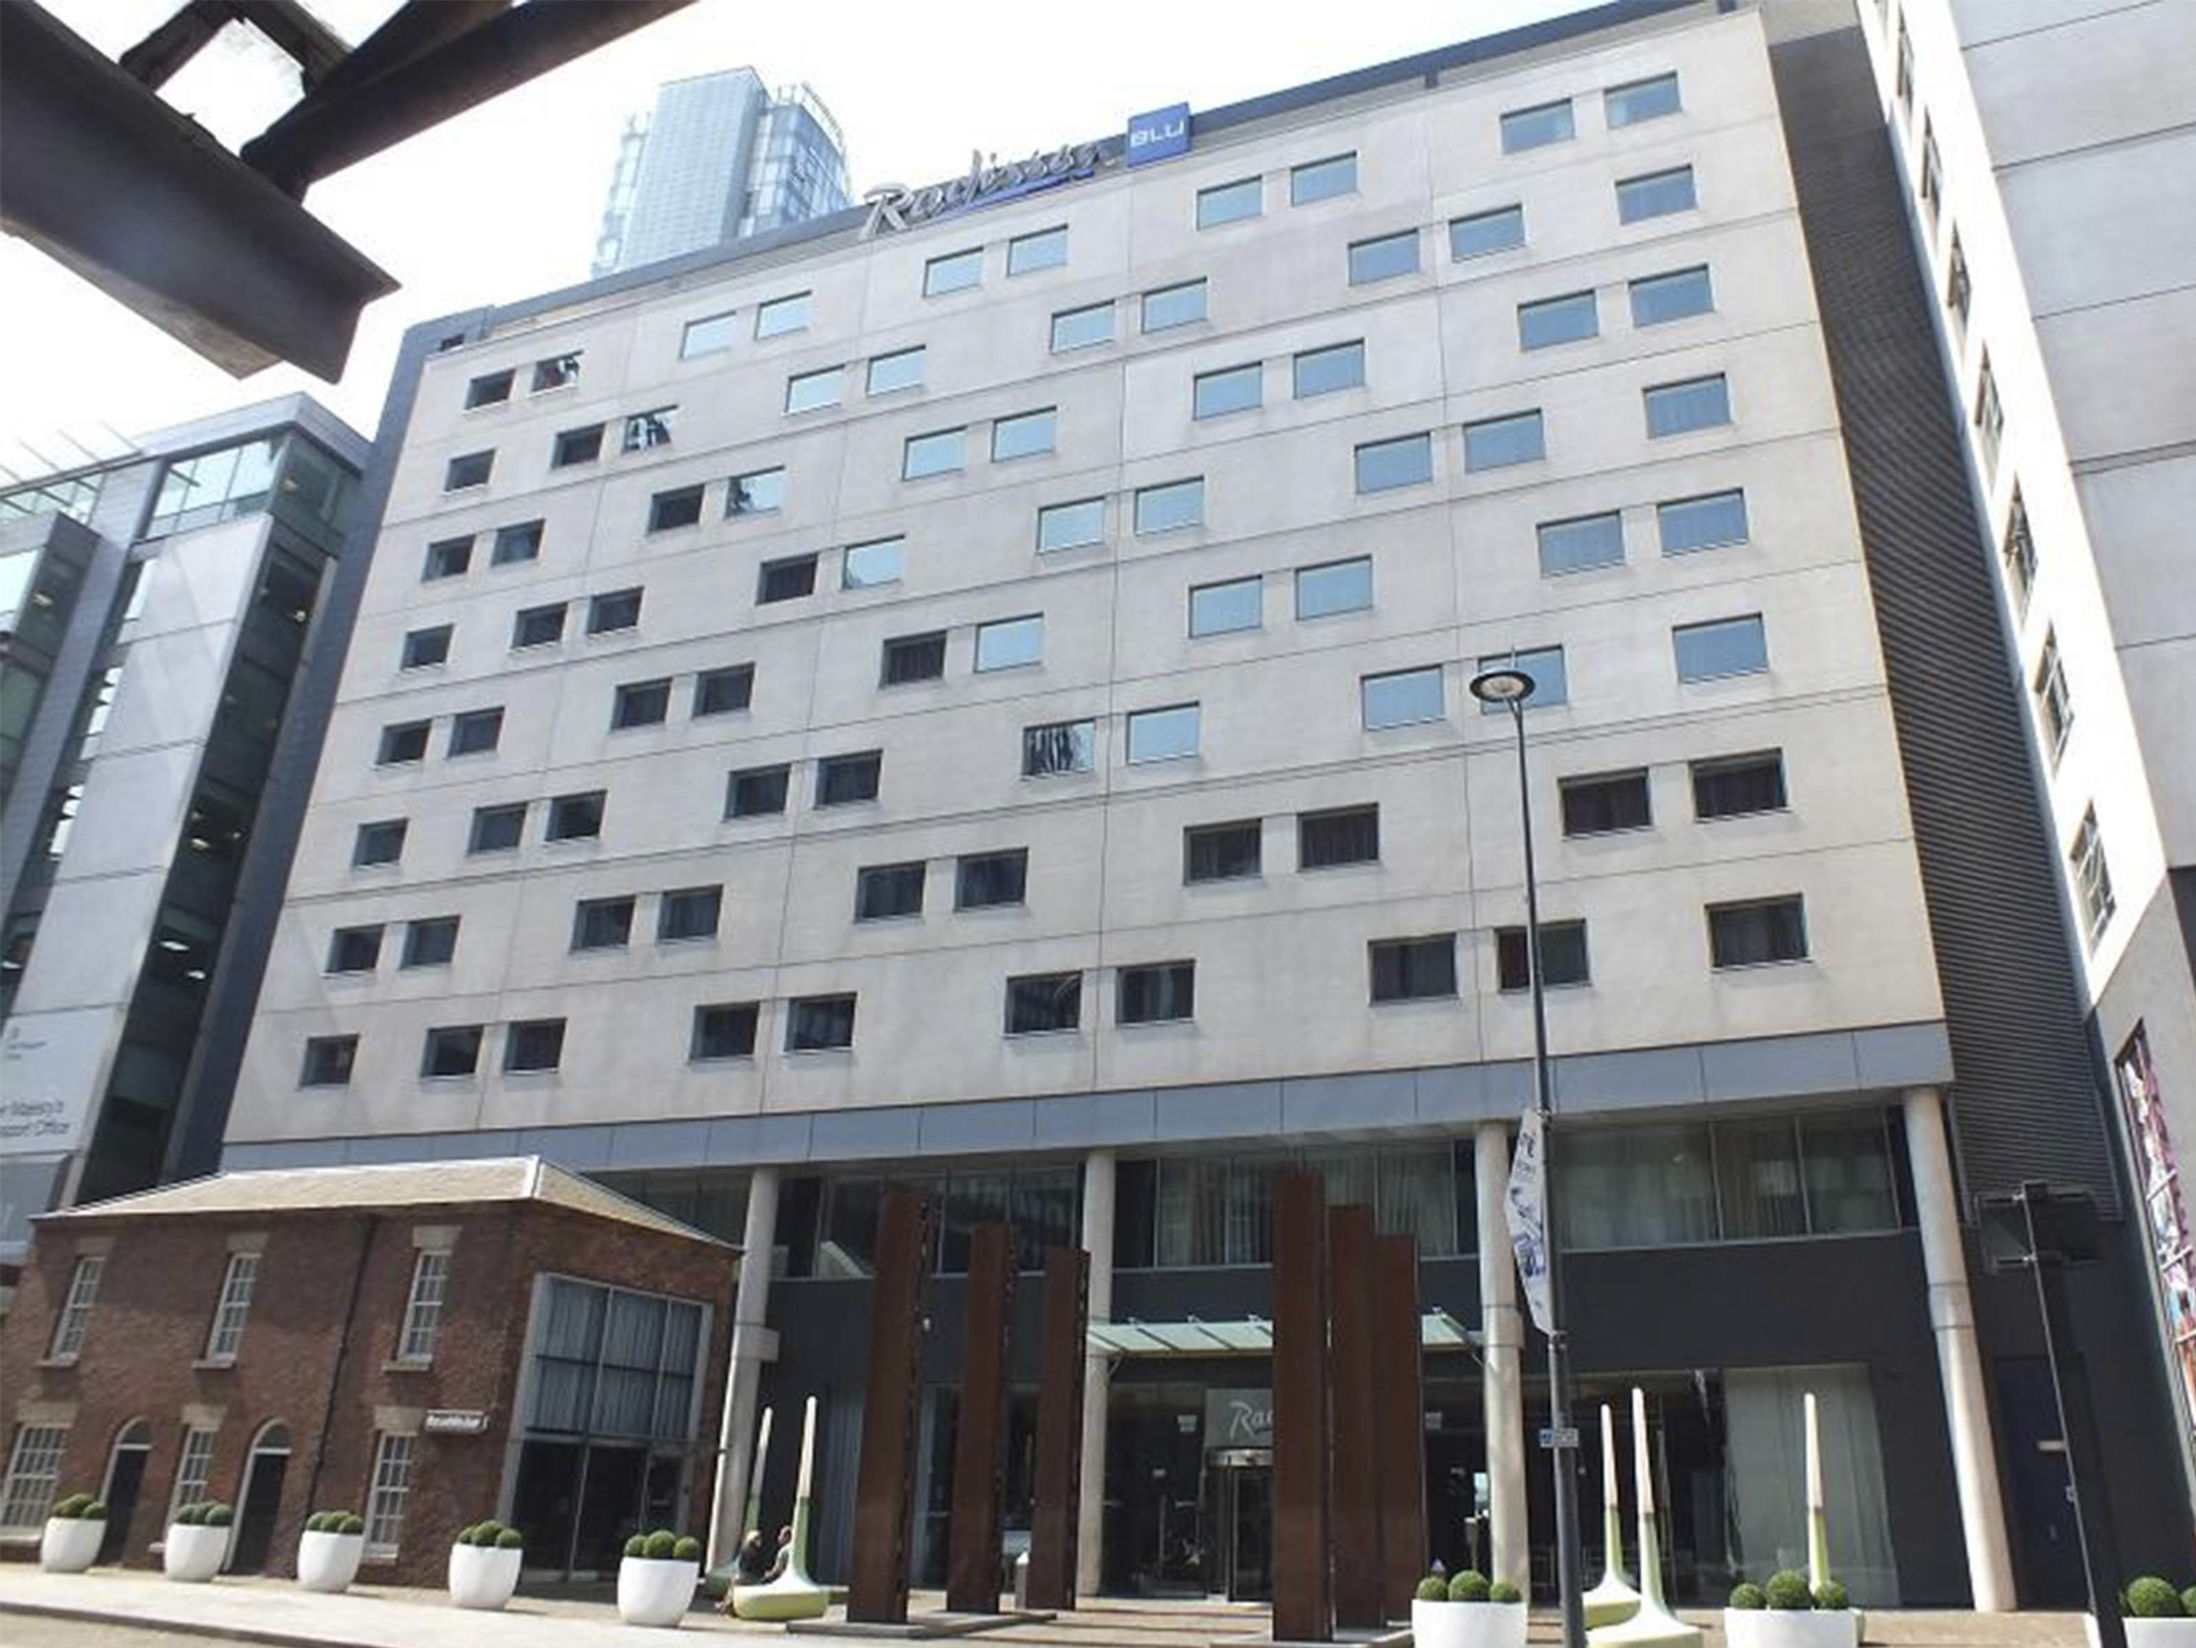 Radisson Blu Hotel - Best Hotels in Liverpool